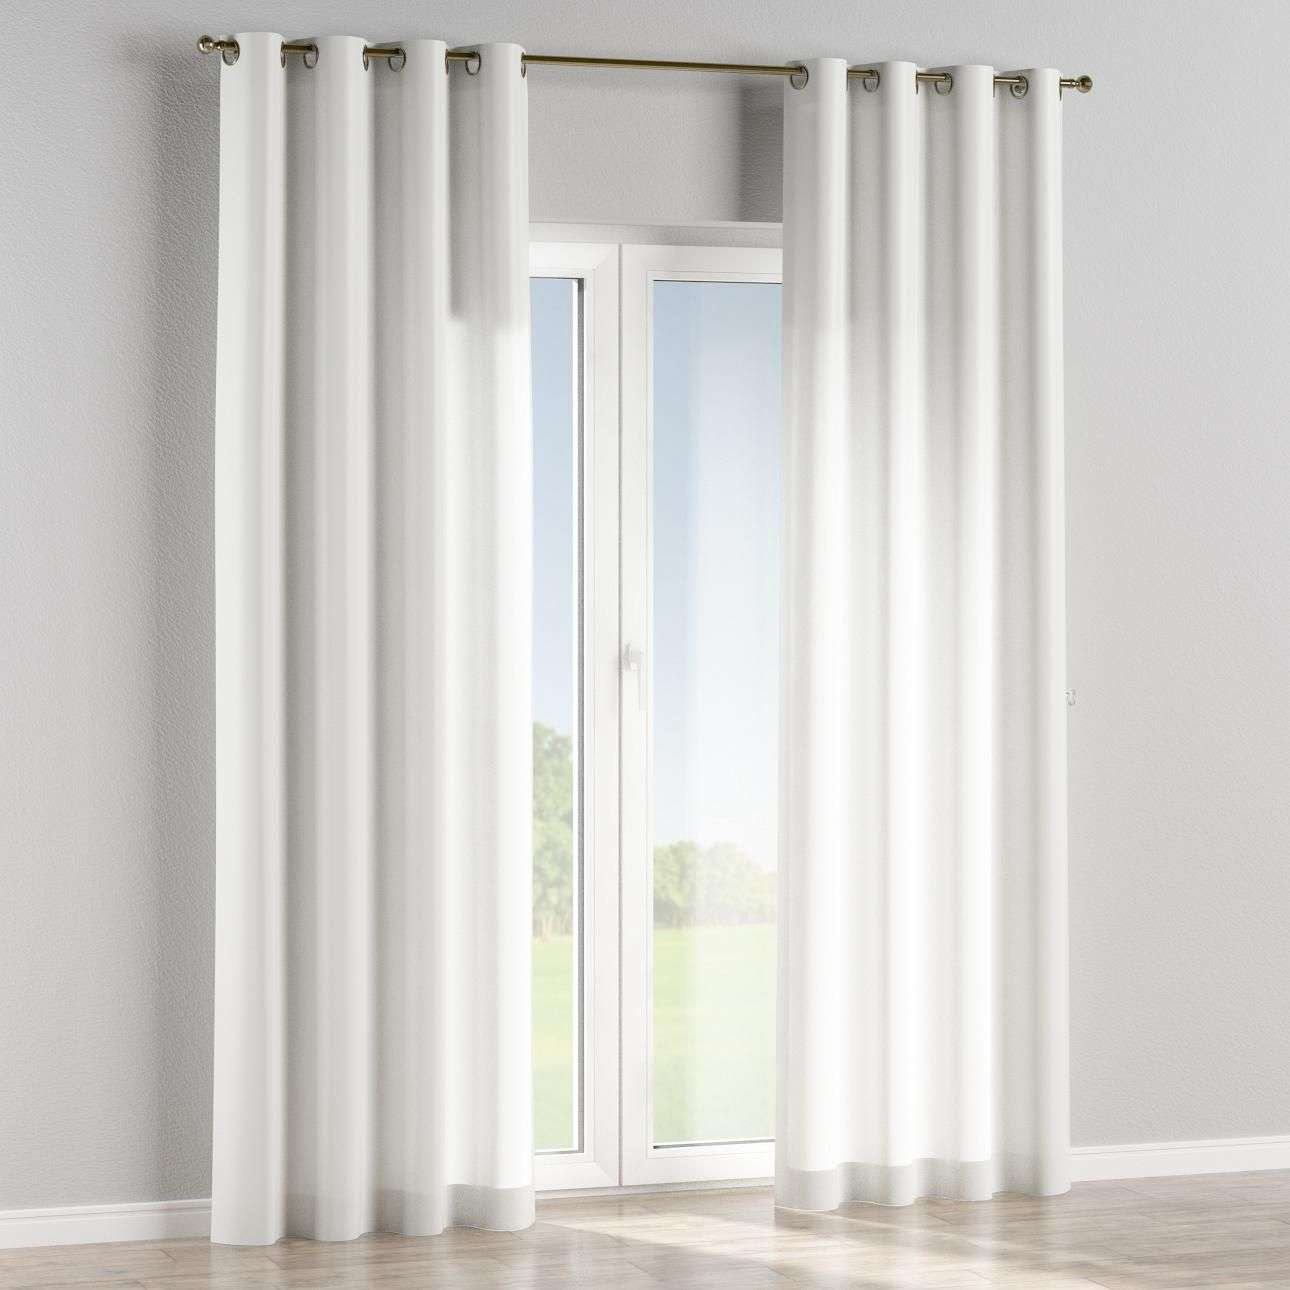 Eyelet curtains in collection Norge, fabric: 140-92